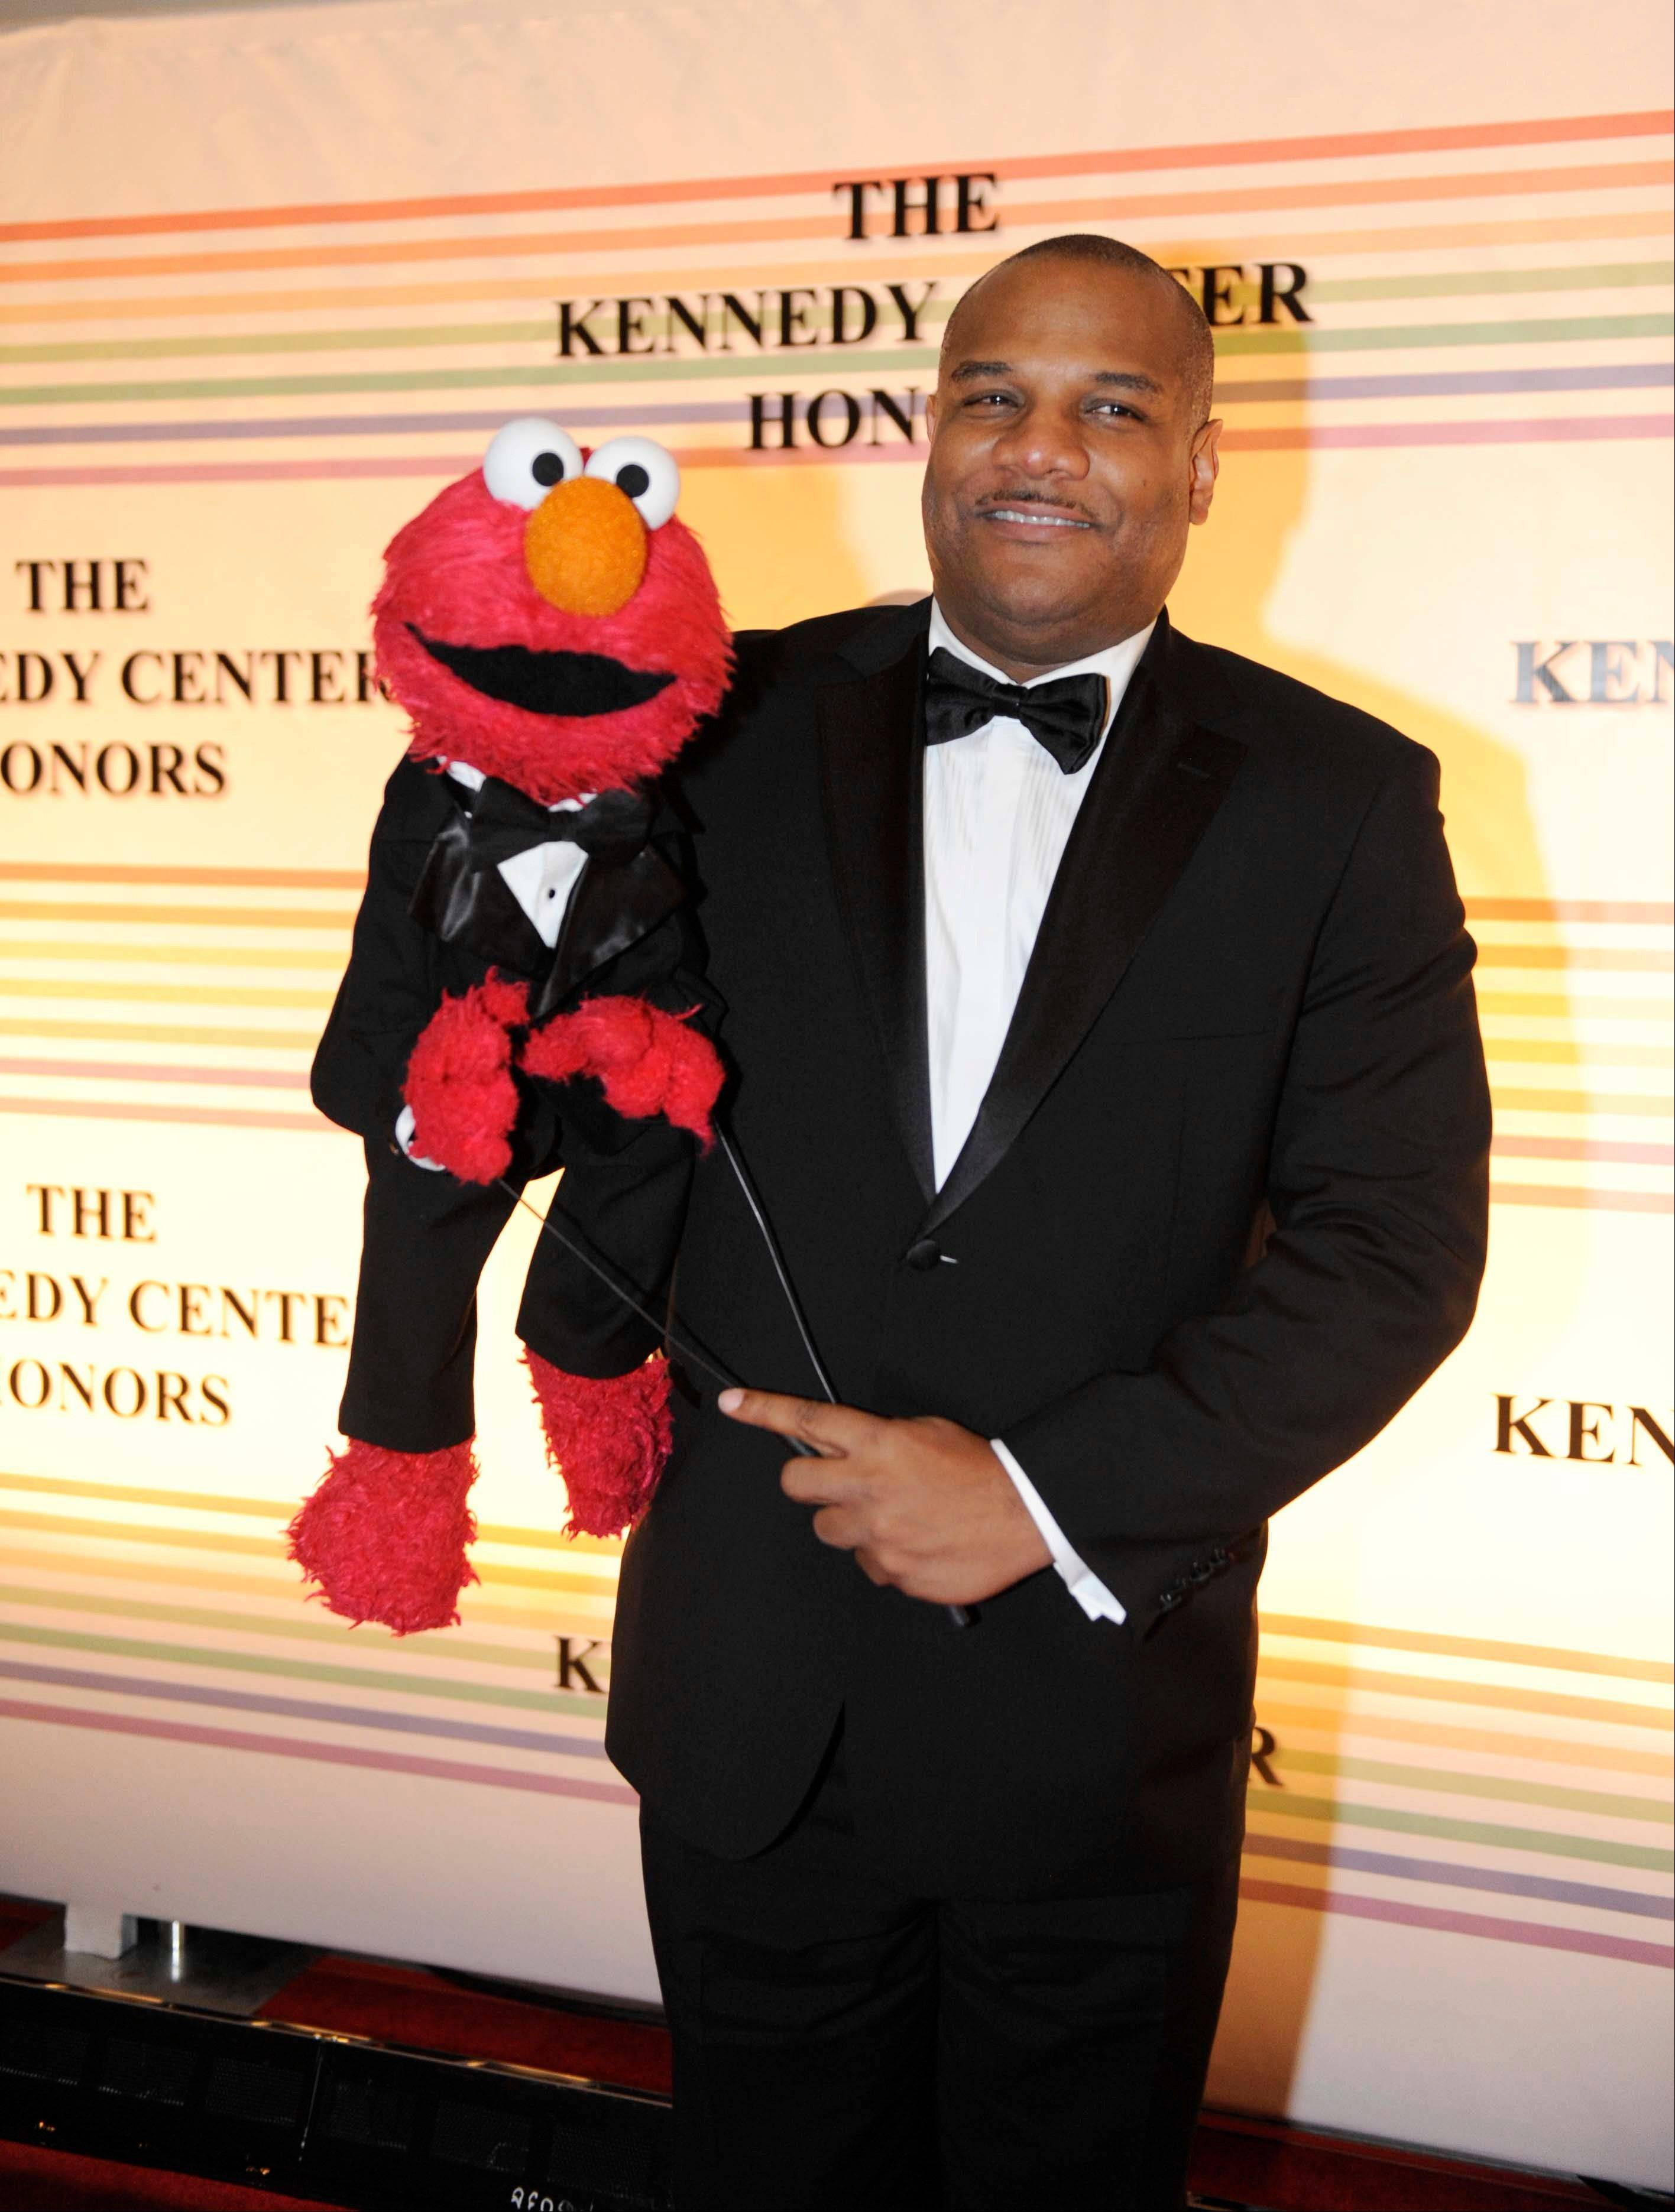 Puppeteer Kevin Clash for �Sesame Street� character Elmo has taken a leave of absence from the popular kids� show following allegations he had a relationship with a 16-year-old boy.